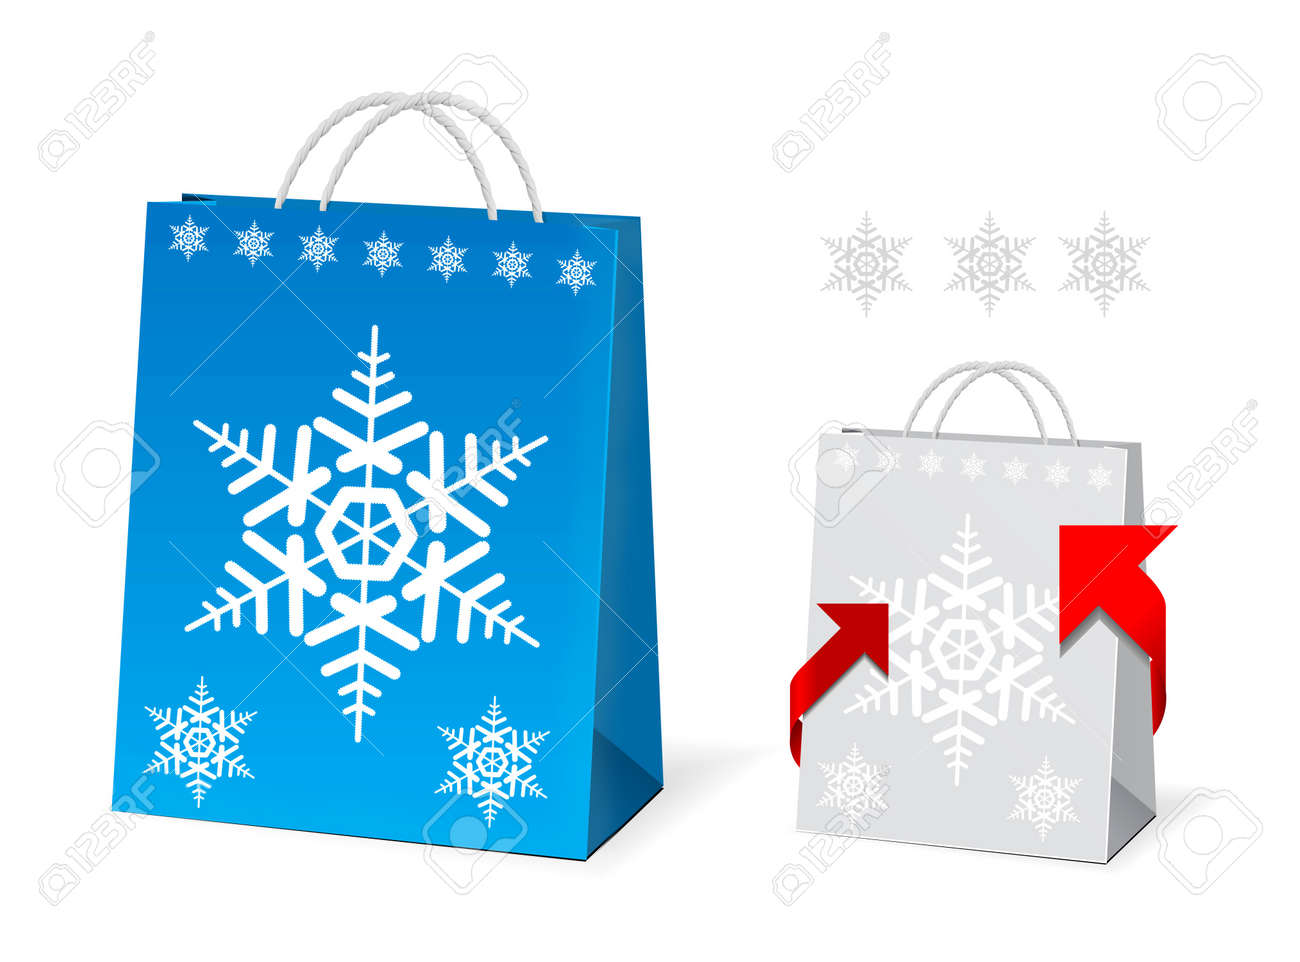 Christmas Paper Bag Design Royalty Free Cliparts, Vectors, And ...